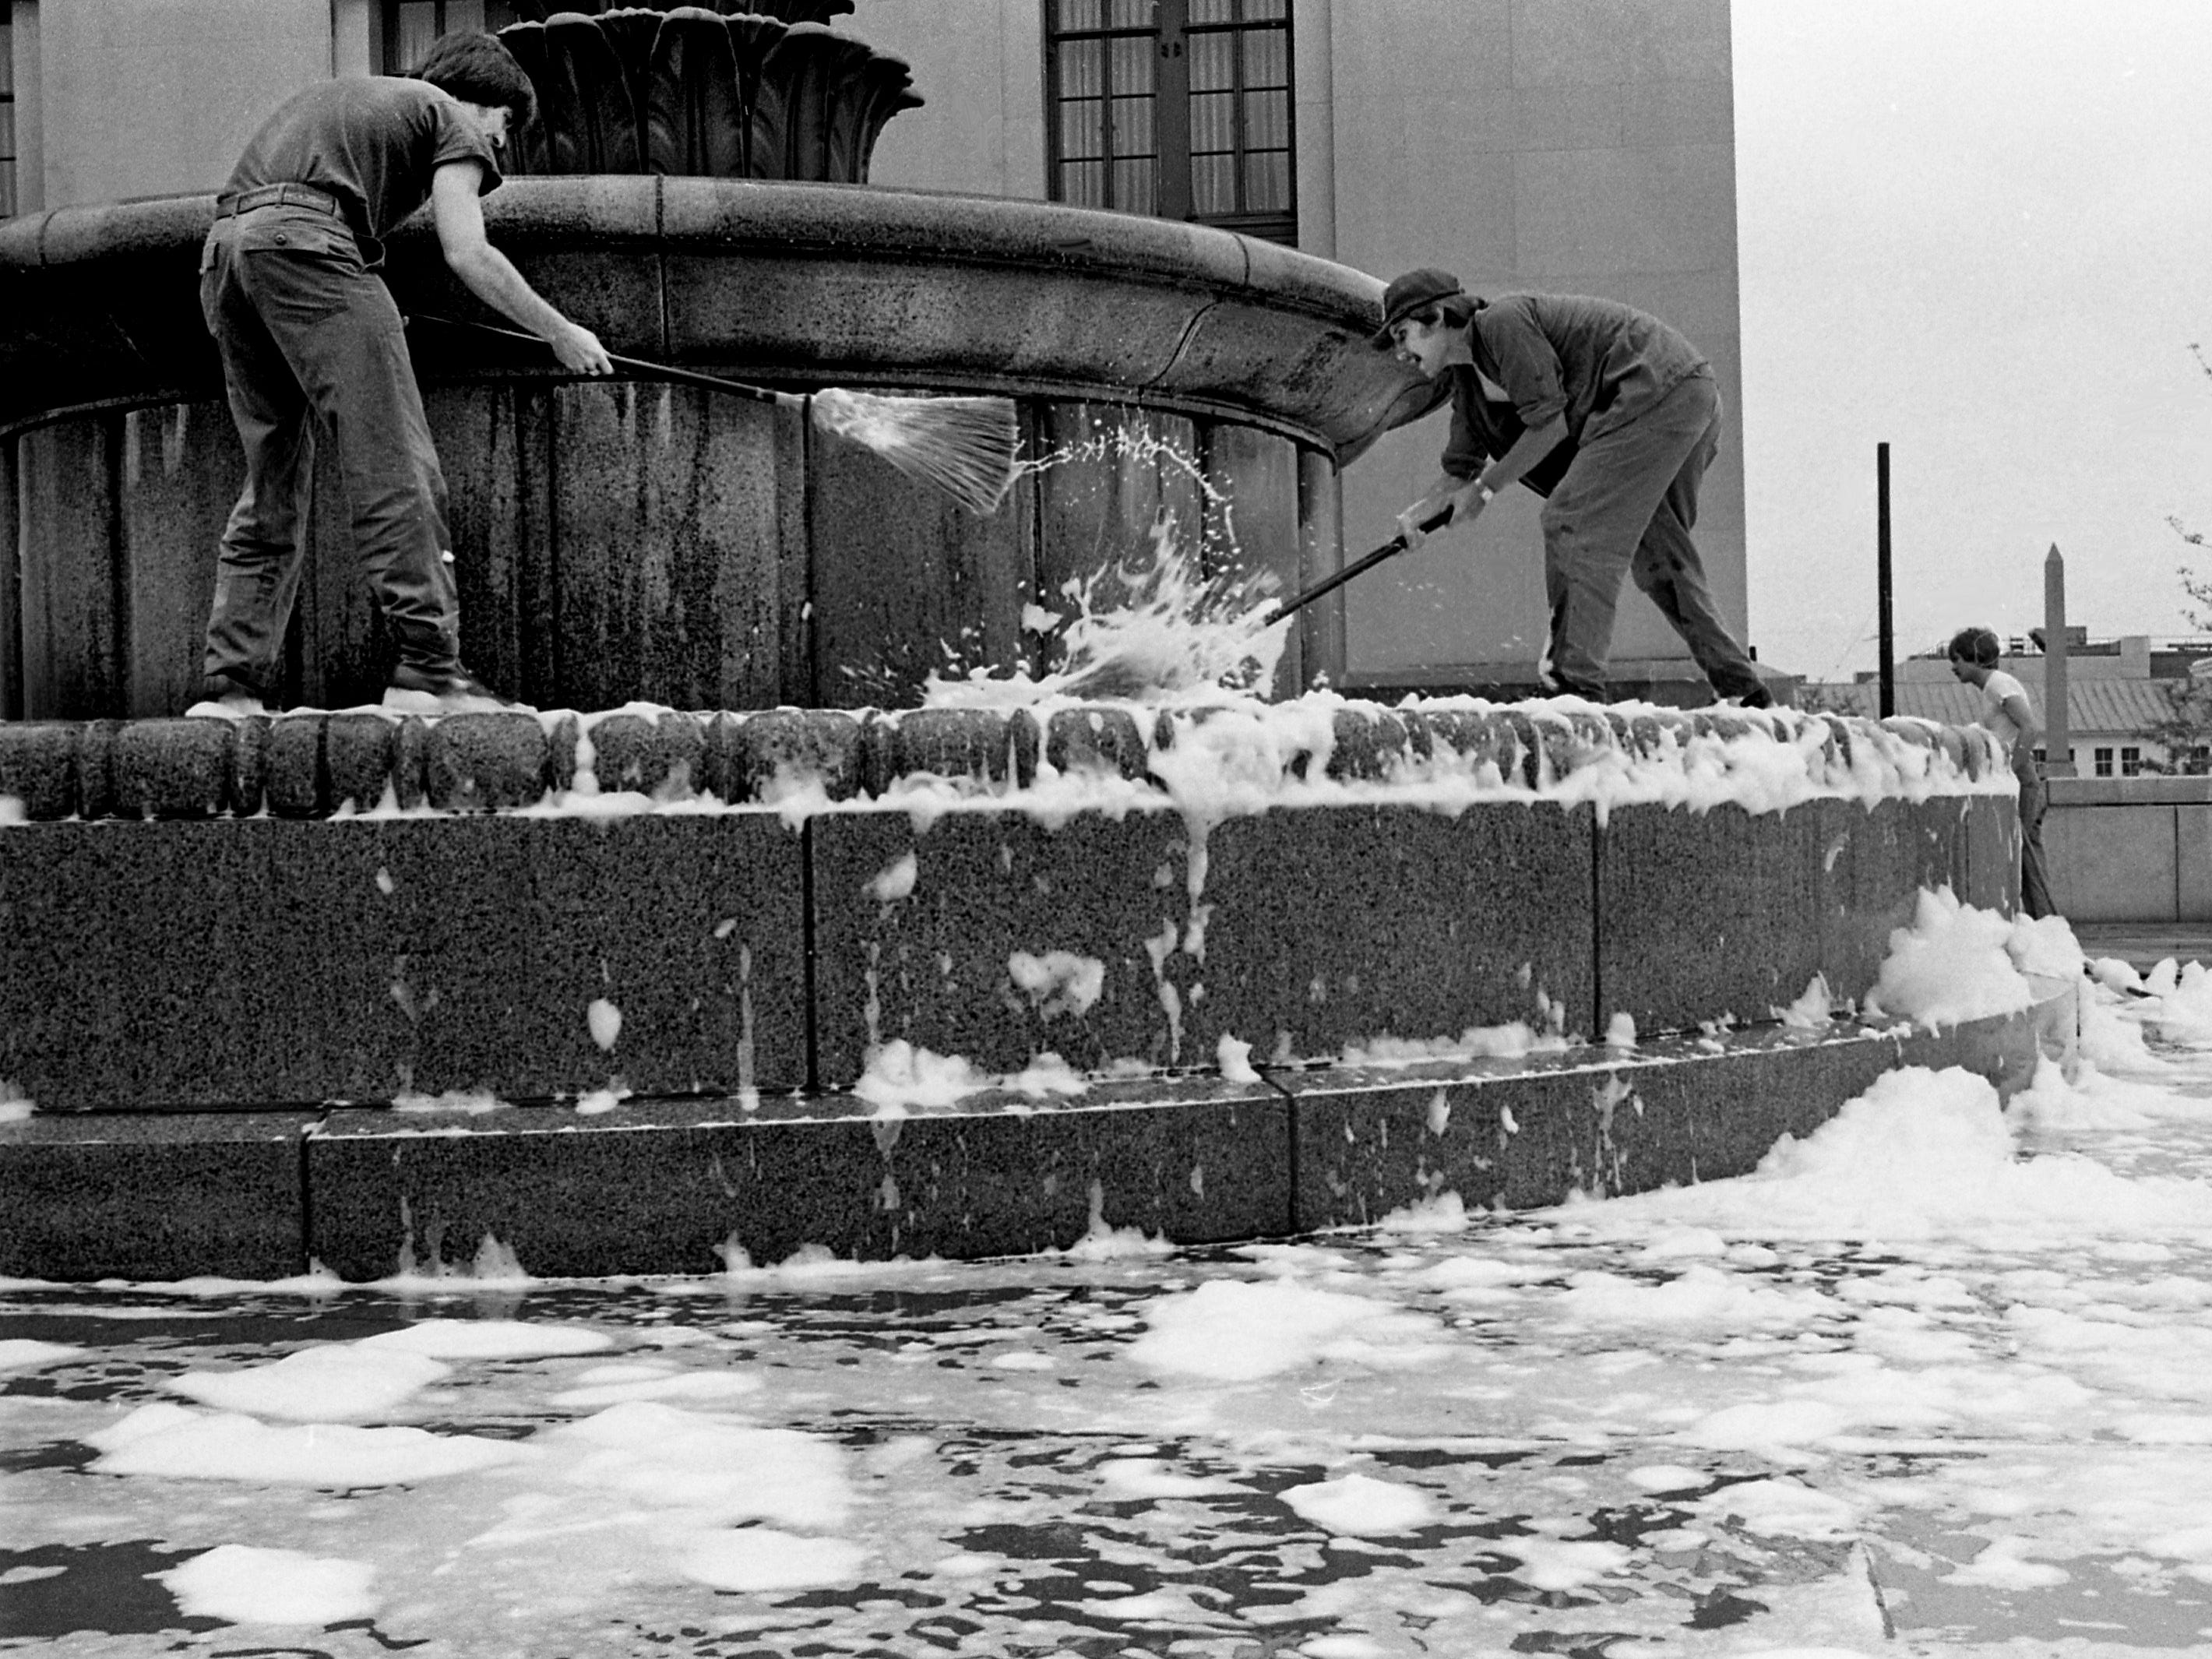 Providing a golden, if somewhat public, opportunity for someone to get a free bath, workers convert a Metro Courthouse fountain into a sudsy tub as they clean its basin April 25, 1979.